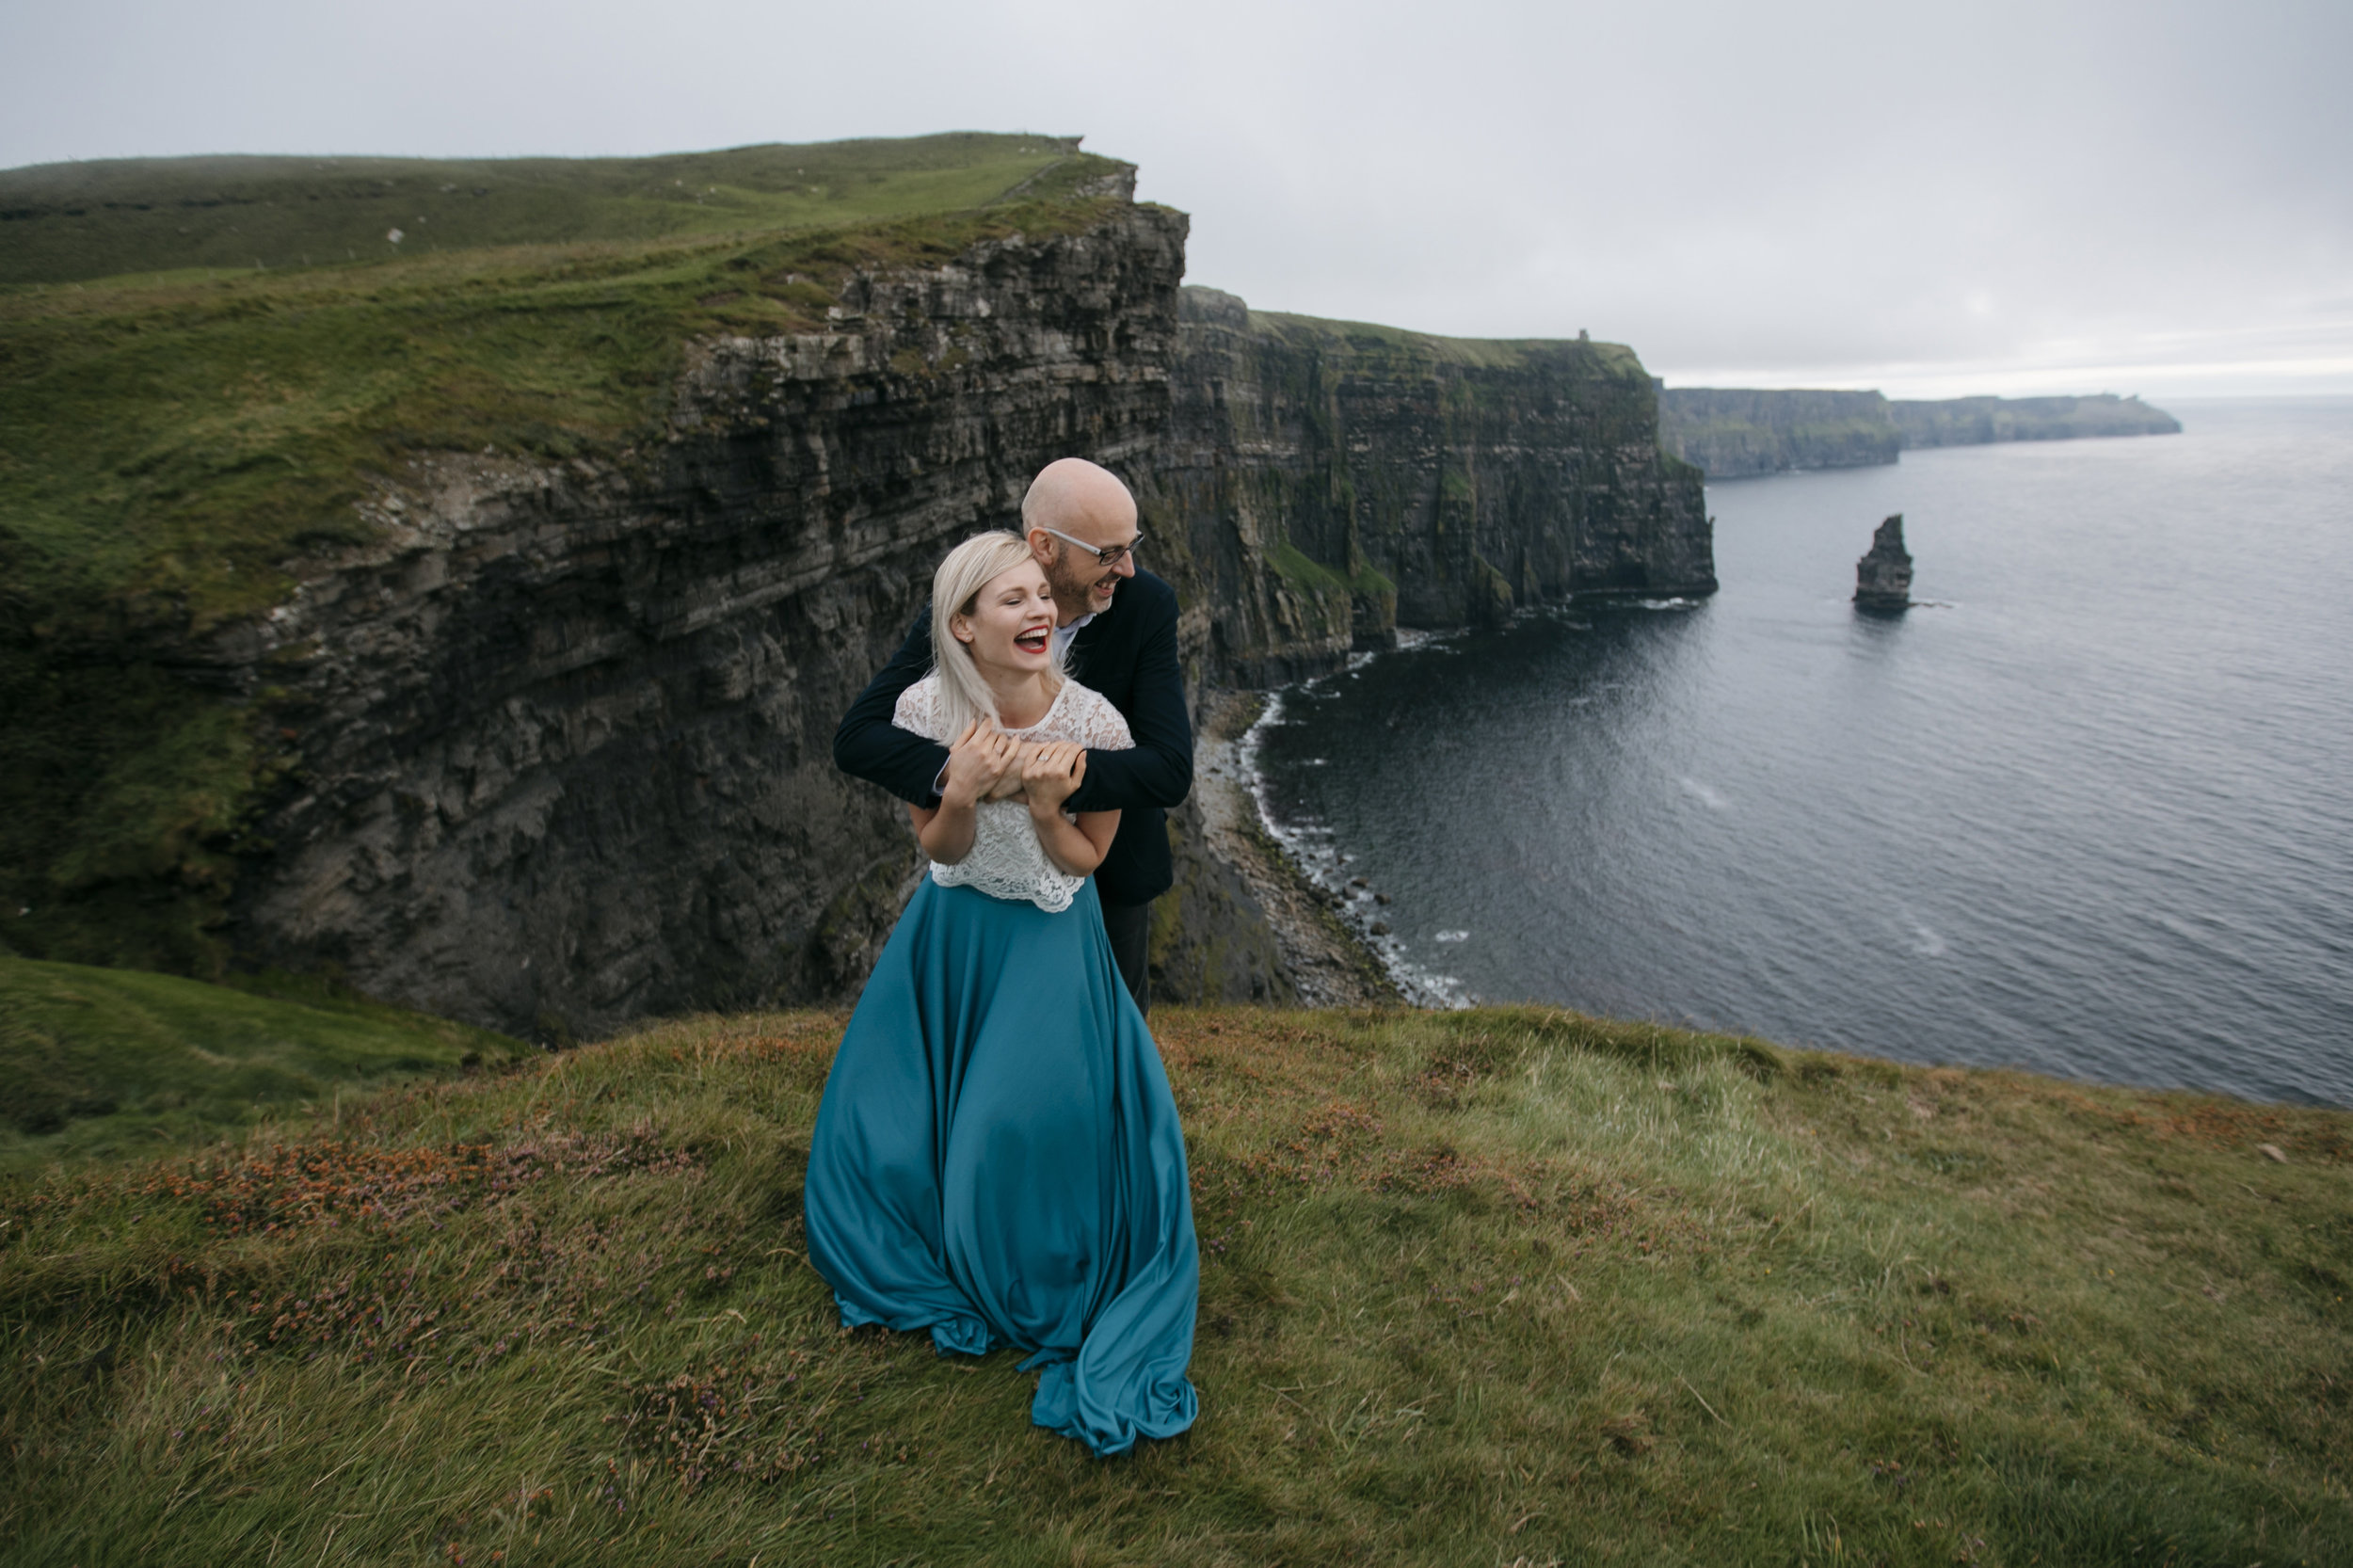 A couple playfully hugging while being photographed by Cliffs of Moher Elopement Photographer Colby and Jess